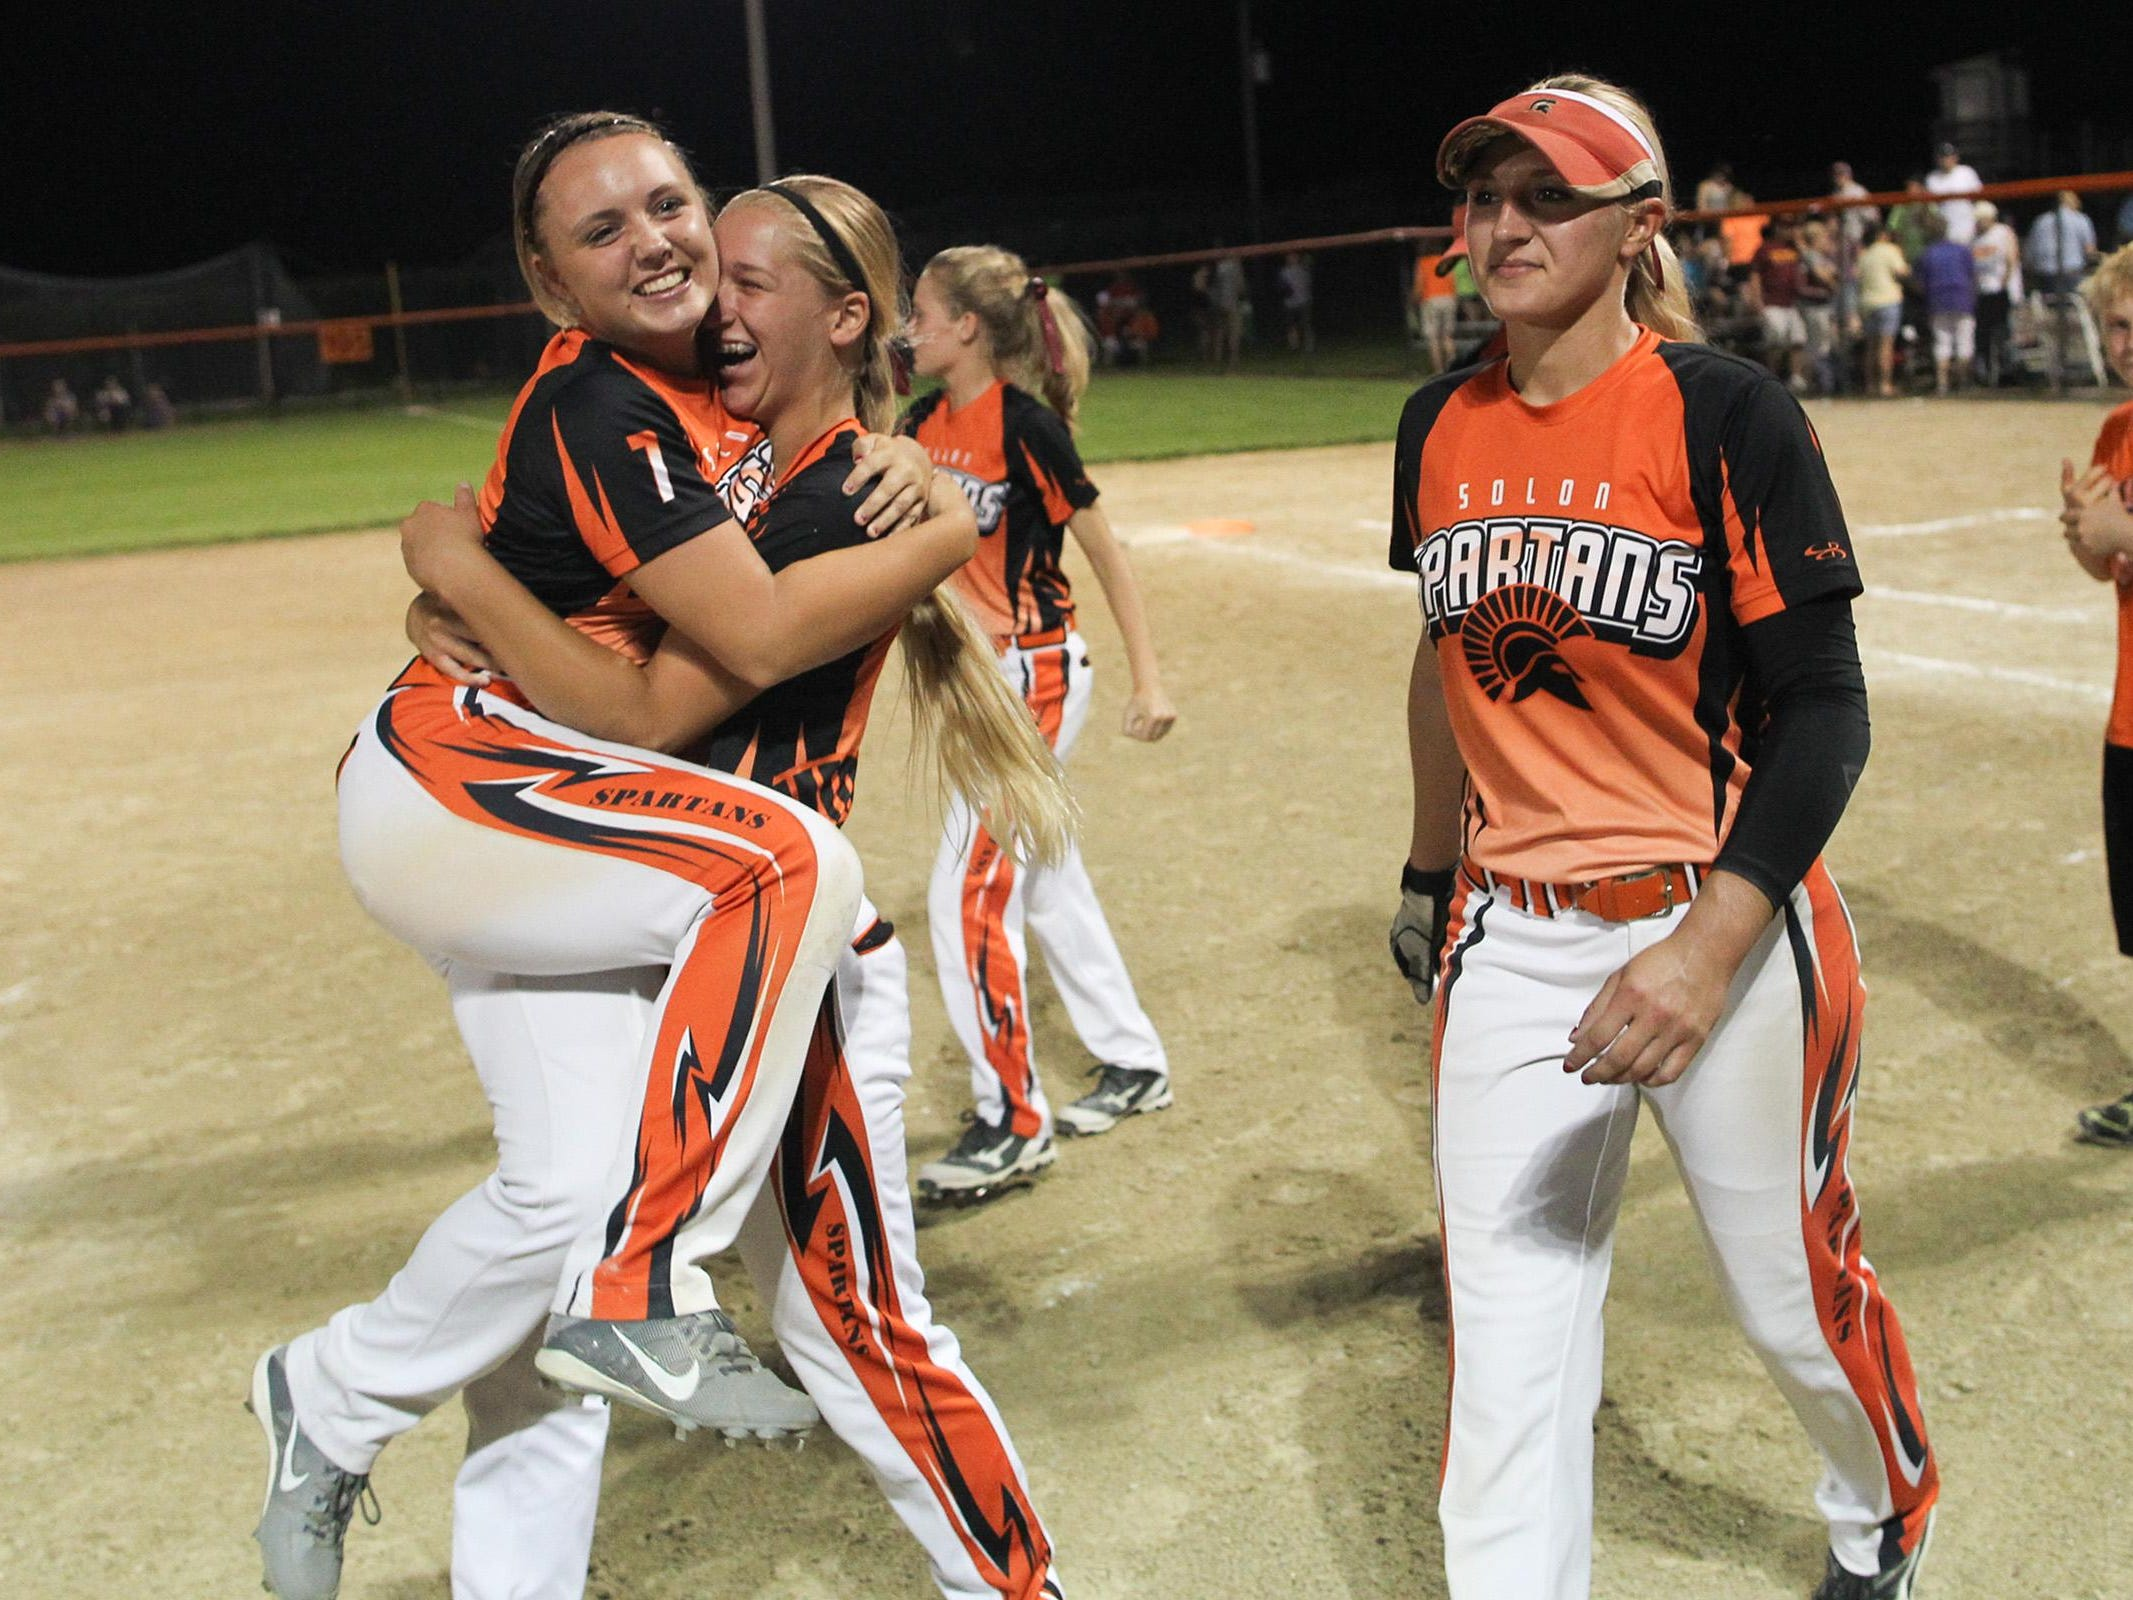 Solon's Nichole Oberthein picks up Hailey Denny for a hug following the Spartans' 5-1 Class 3A regional final win against PCM, Monroe in Grinnell on Monday.